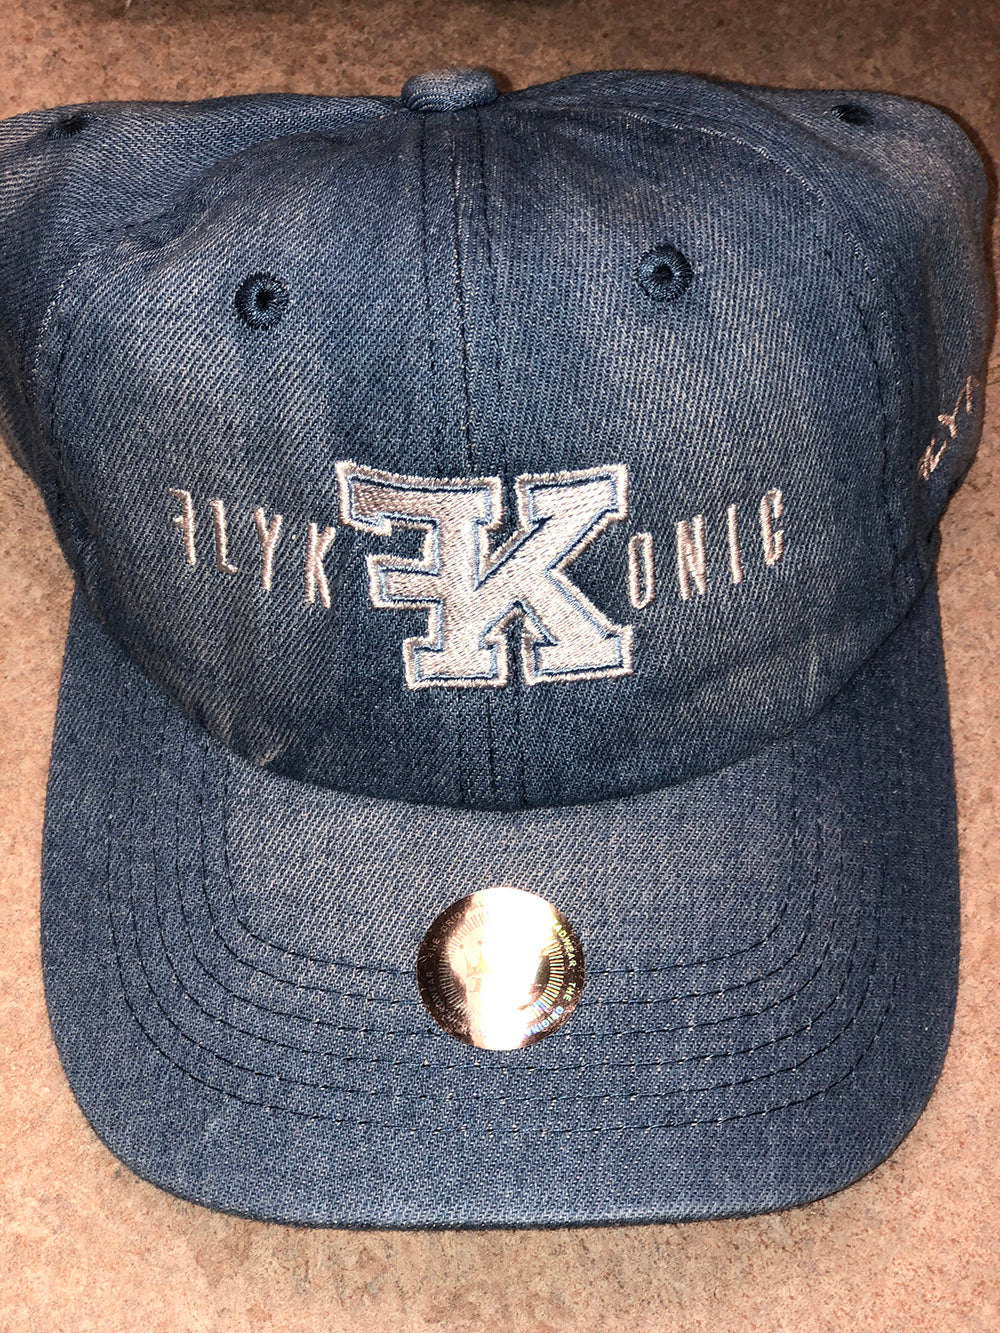 Flykonic Logo Denim Hat with White Stitching